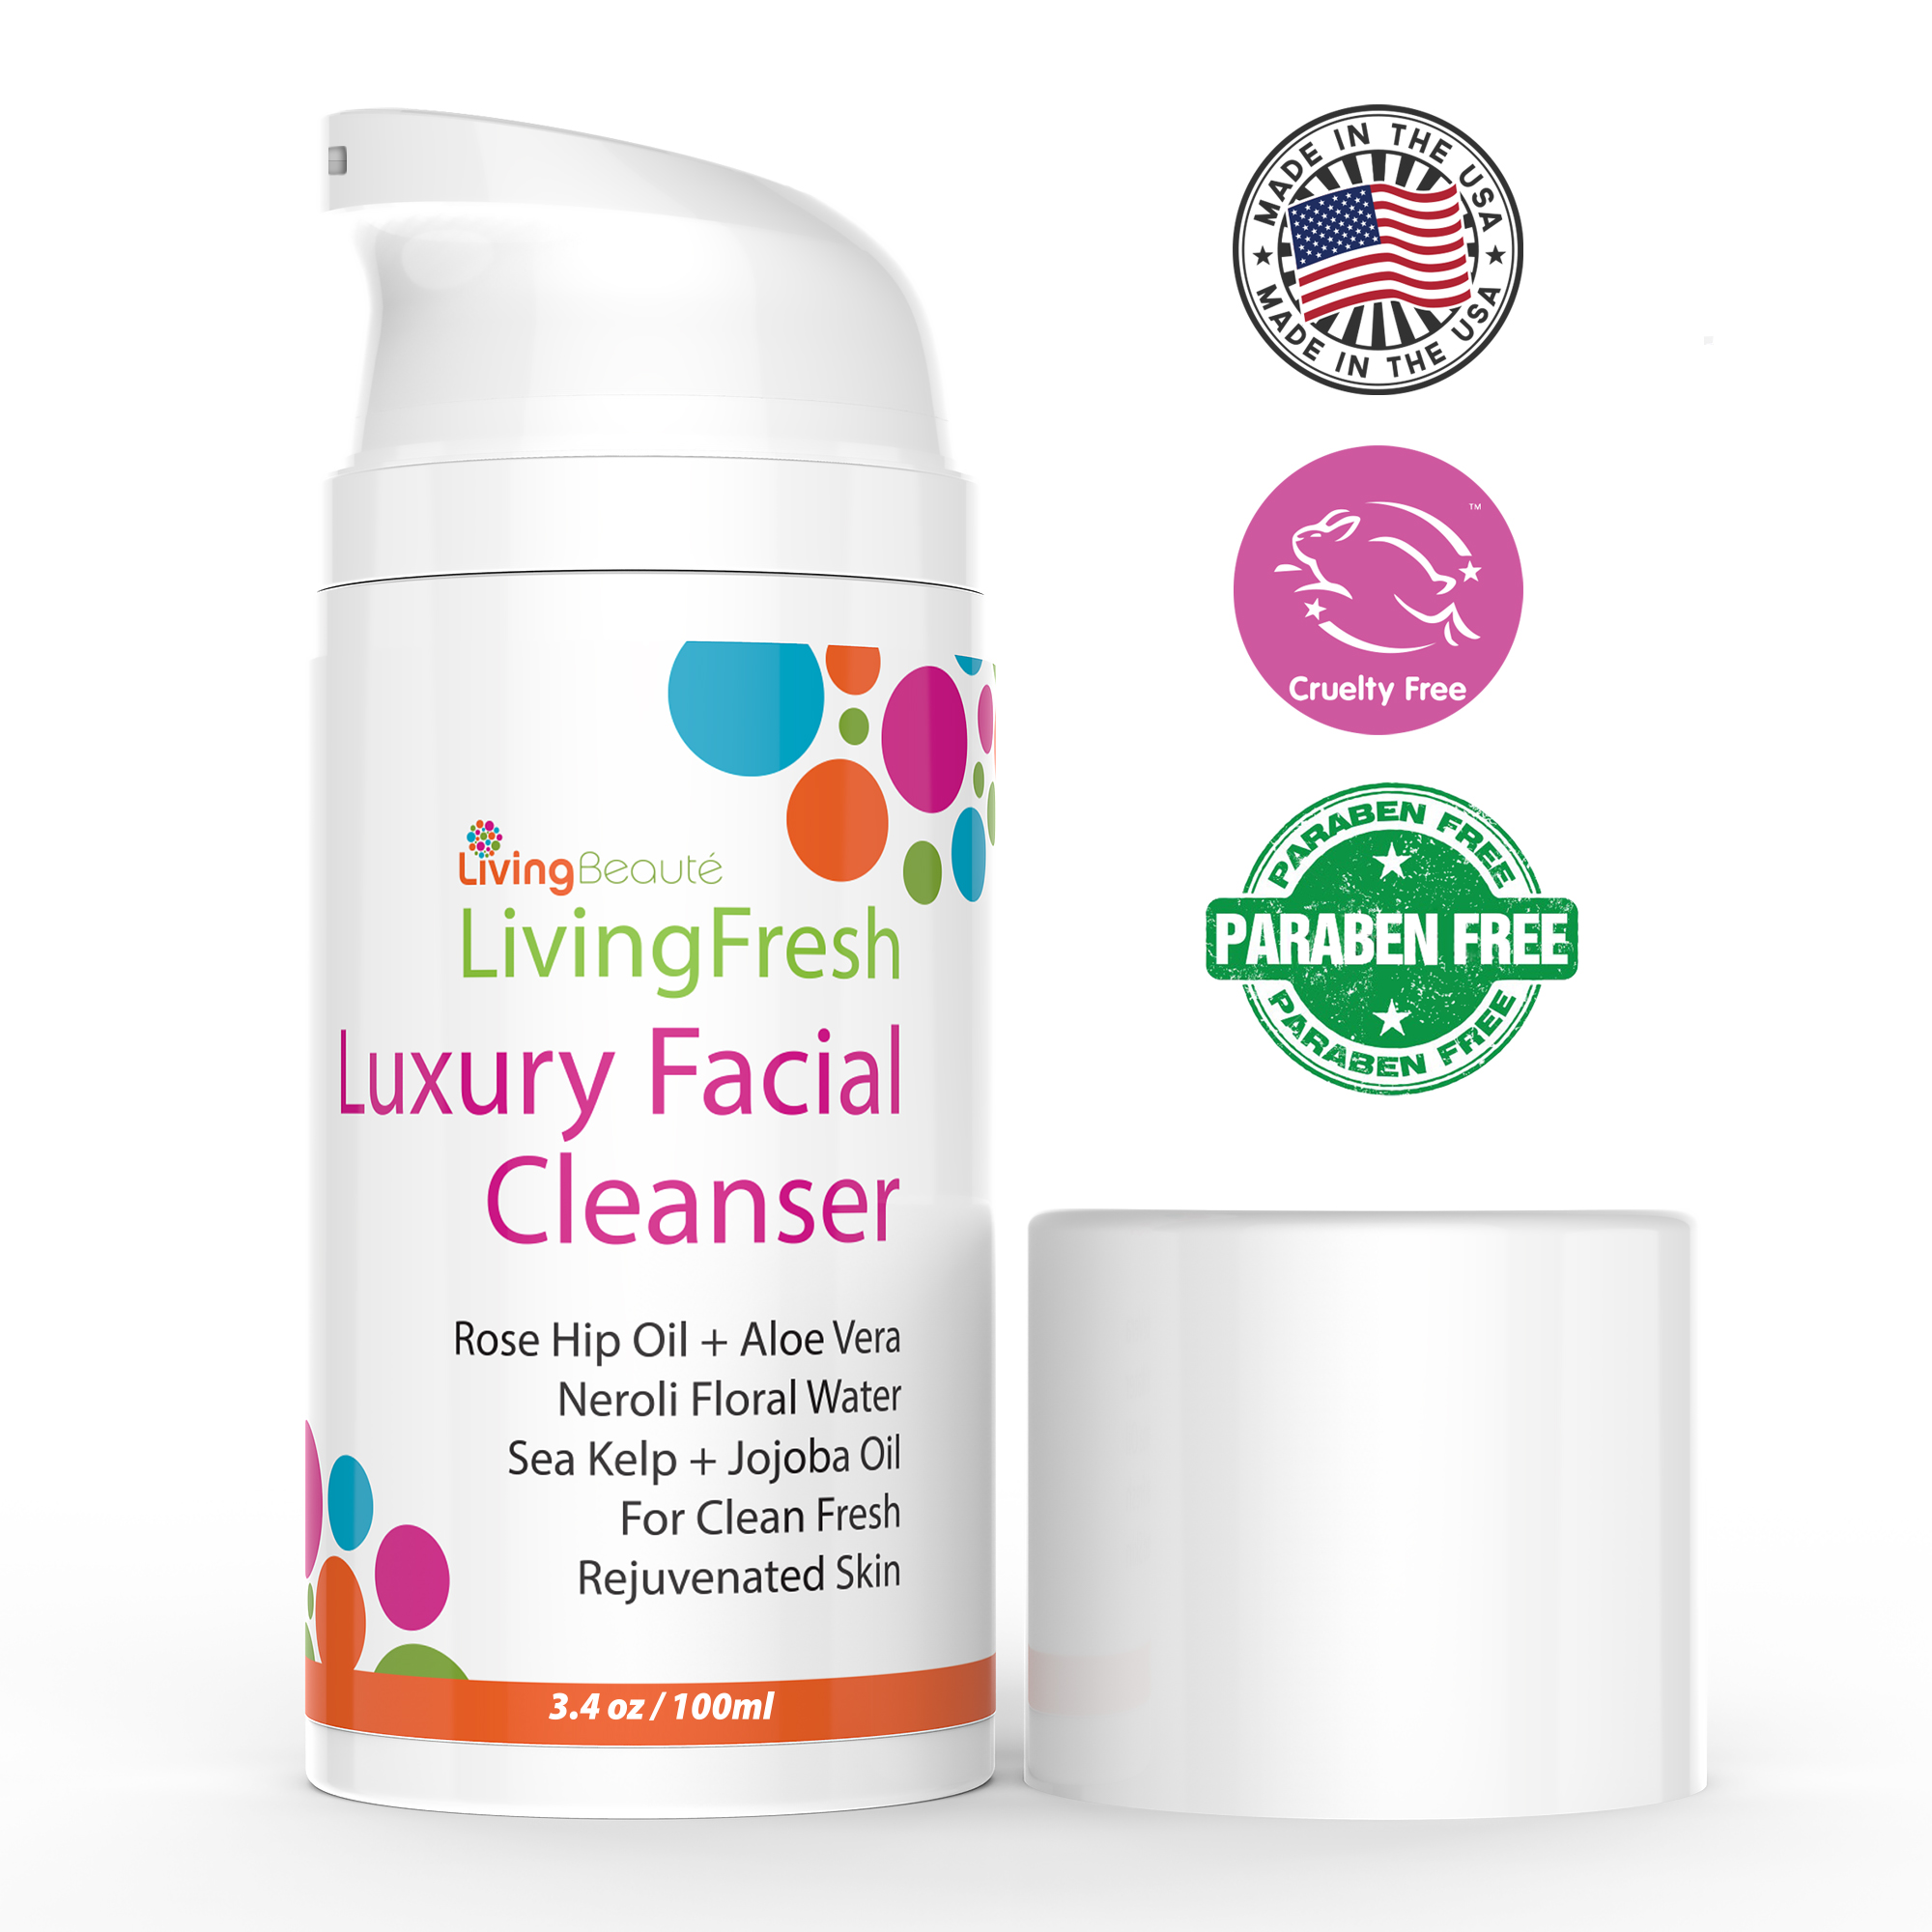 2-LivingFresh-Cleanser-bottle-and-signs